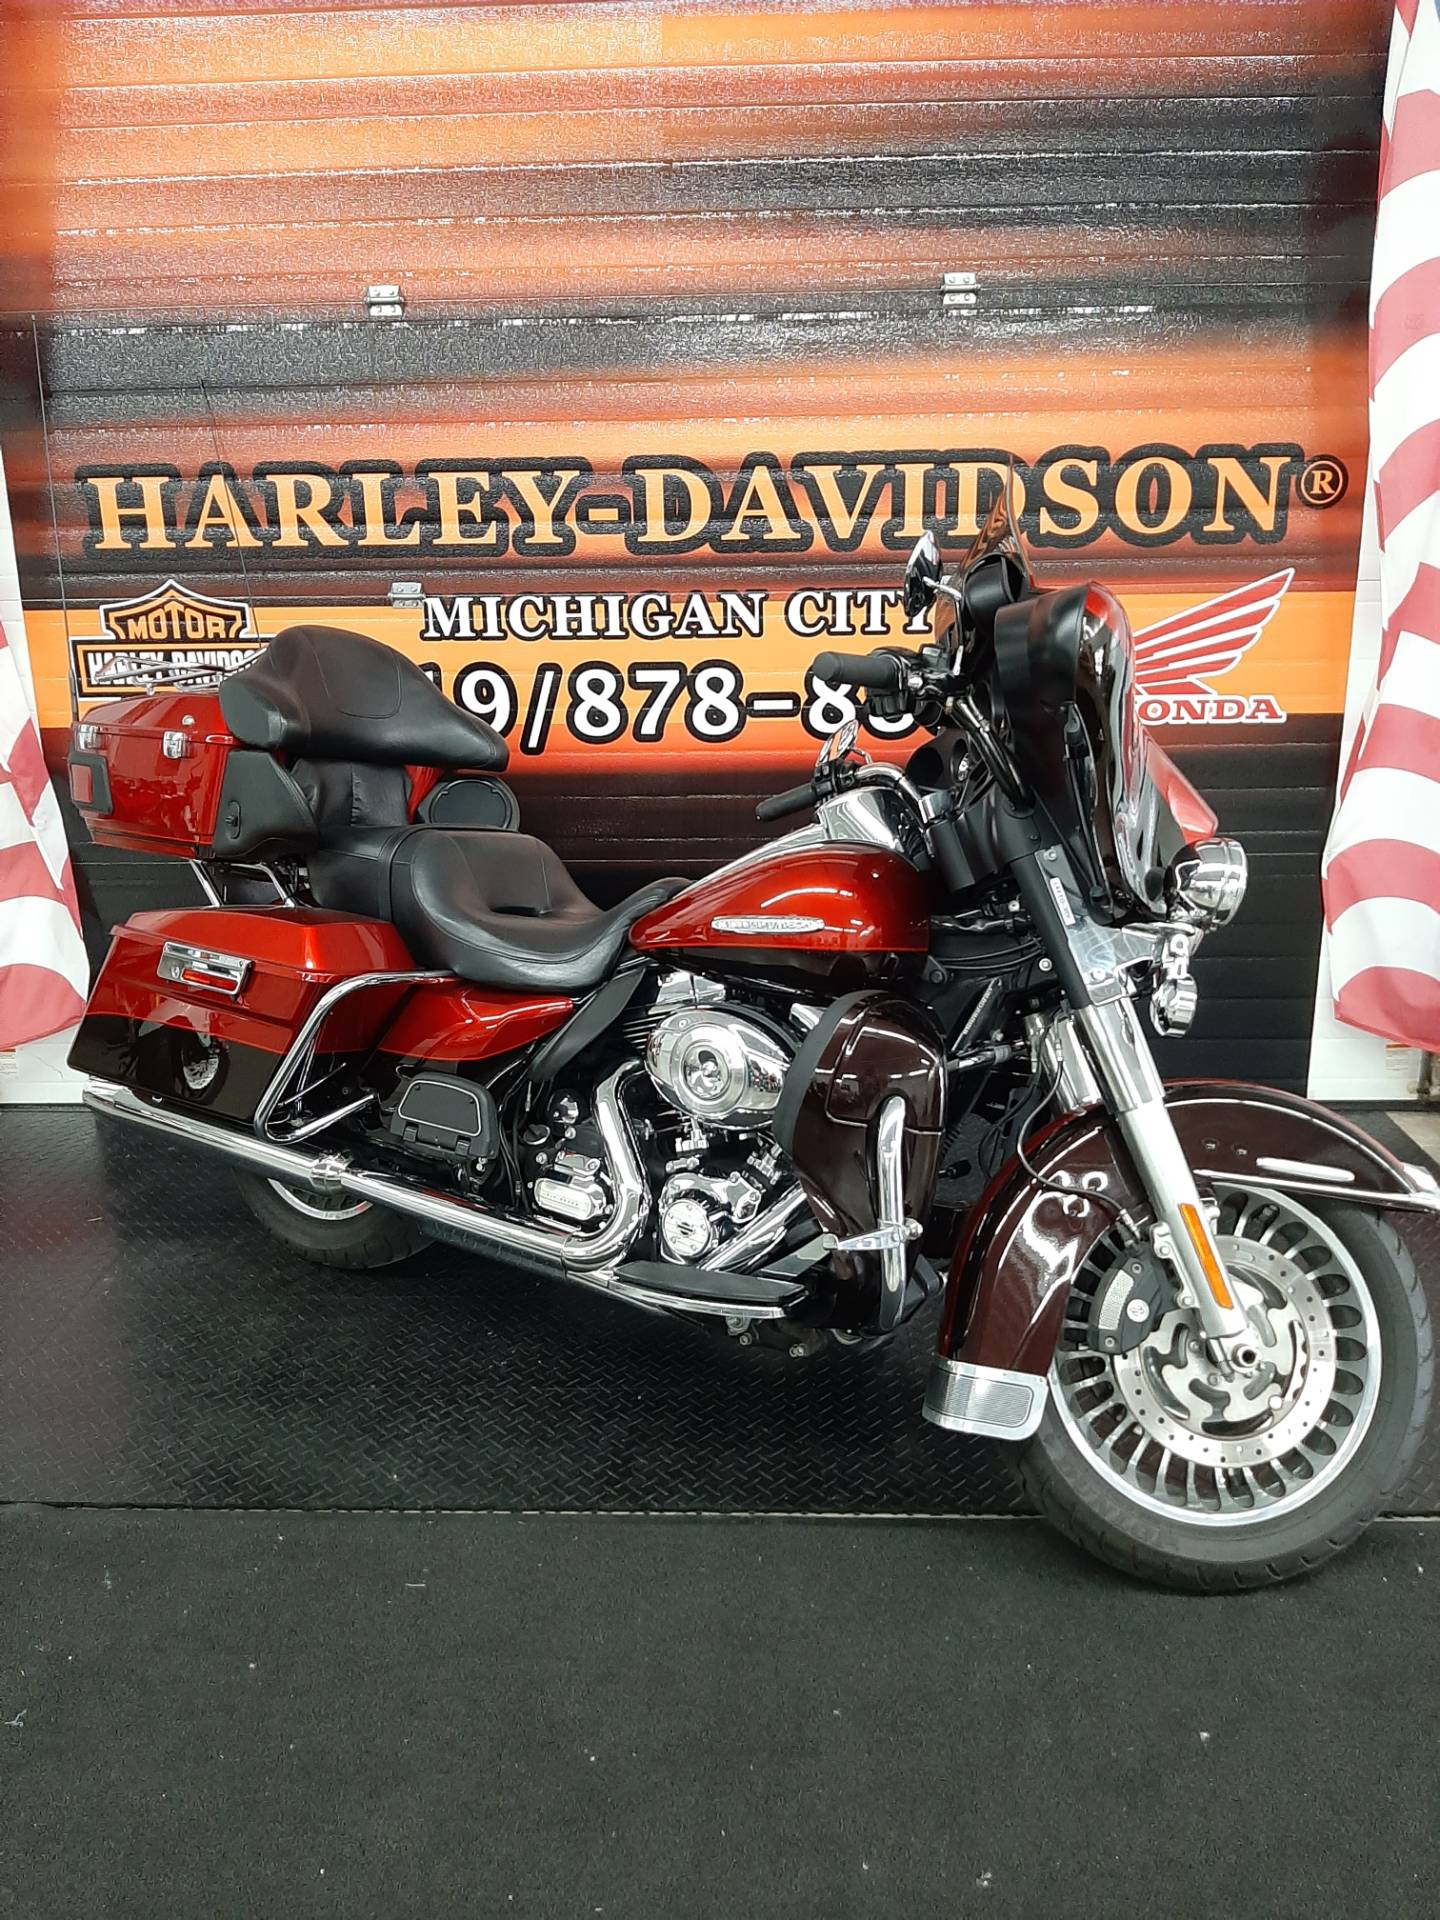 2013 Harley-Davidson FLHTK®Limited® in Michigan City, Indiana - Photo 2